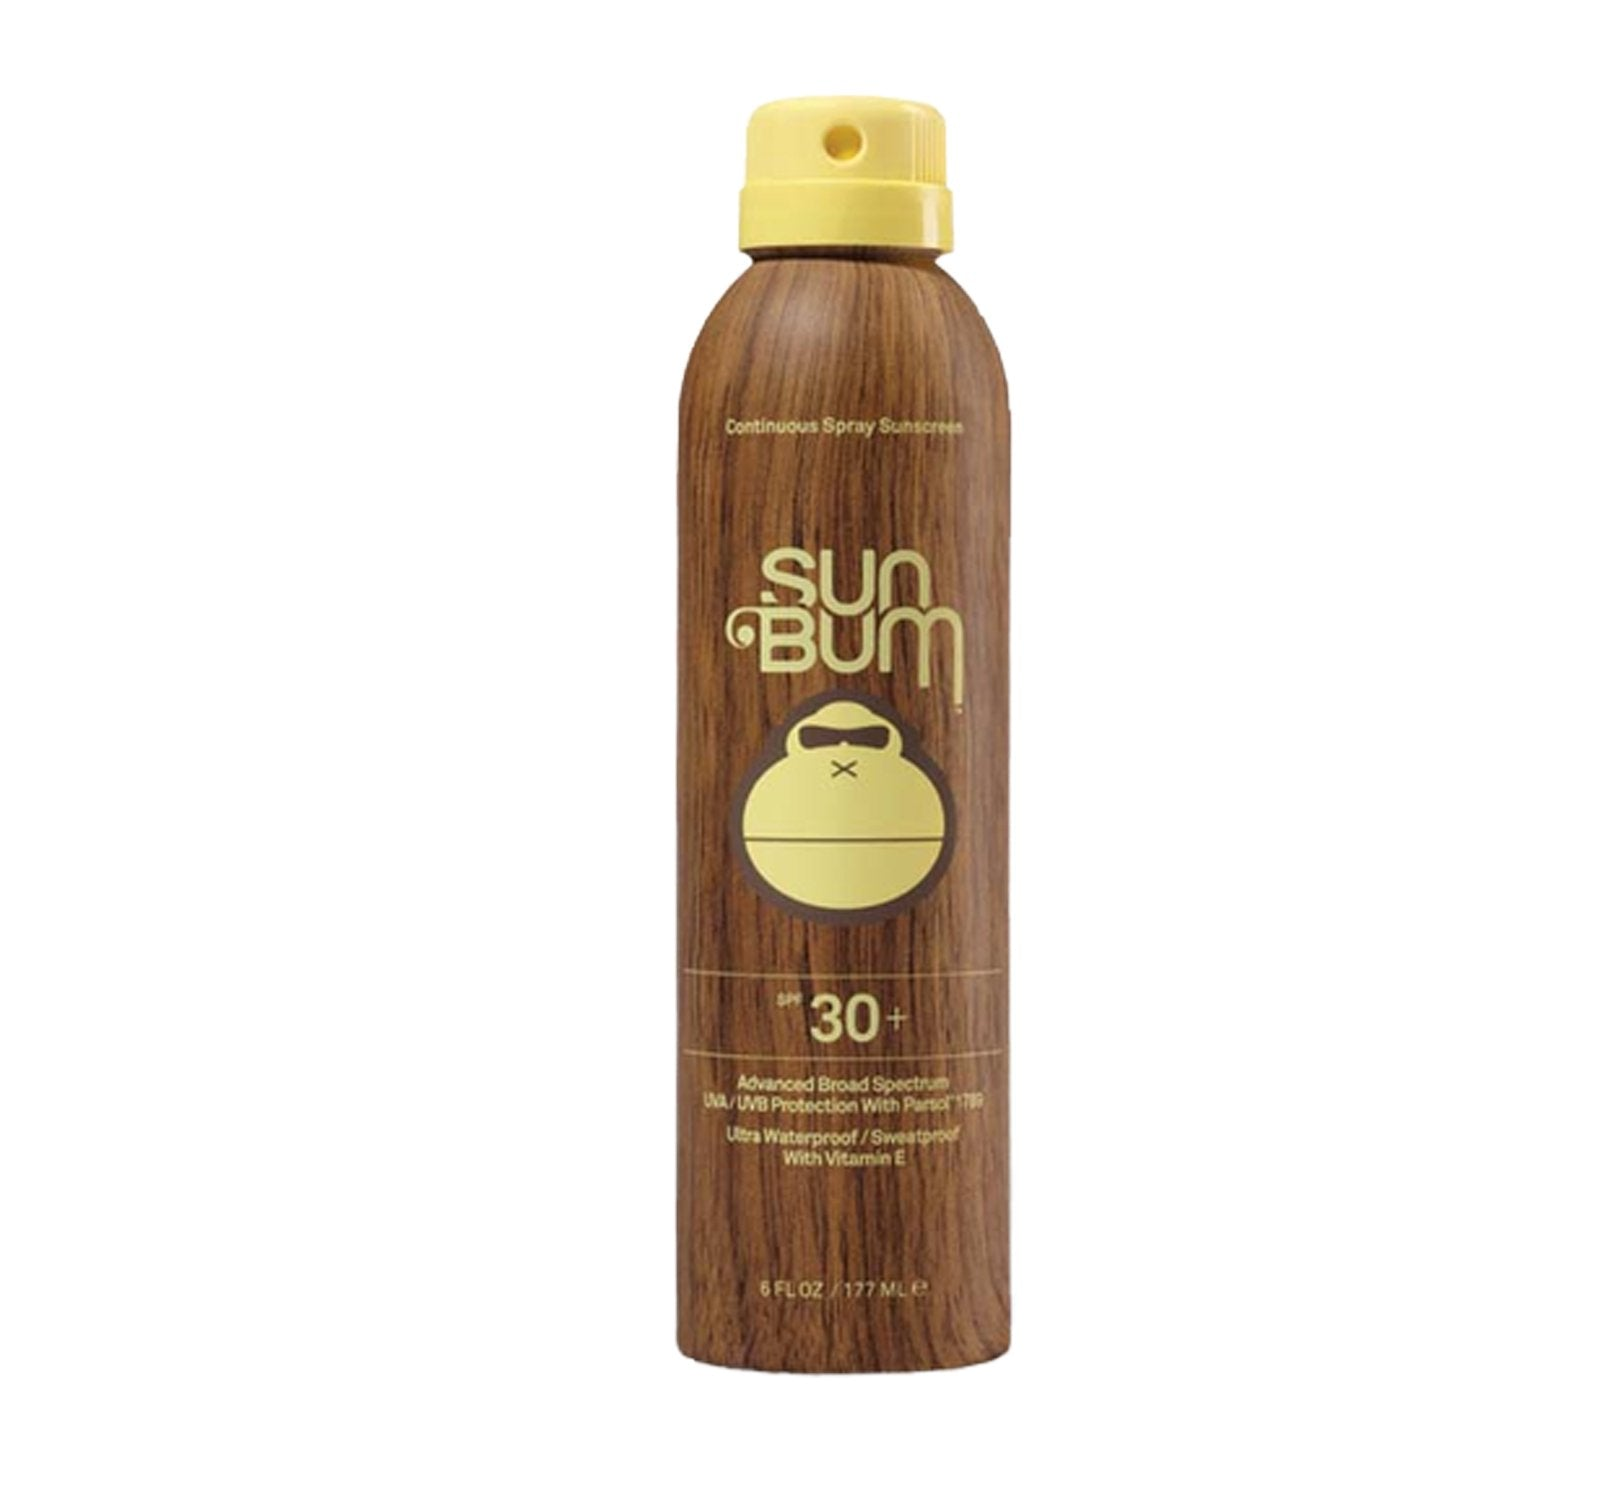 Sun Bum Continues Spray Sunscreen - SPF 30